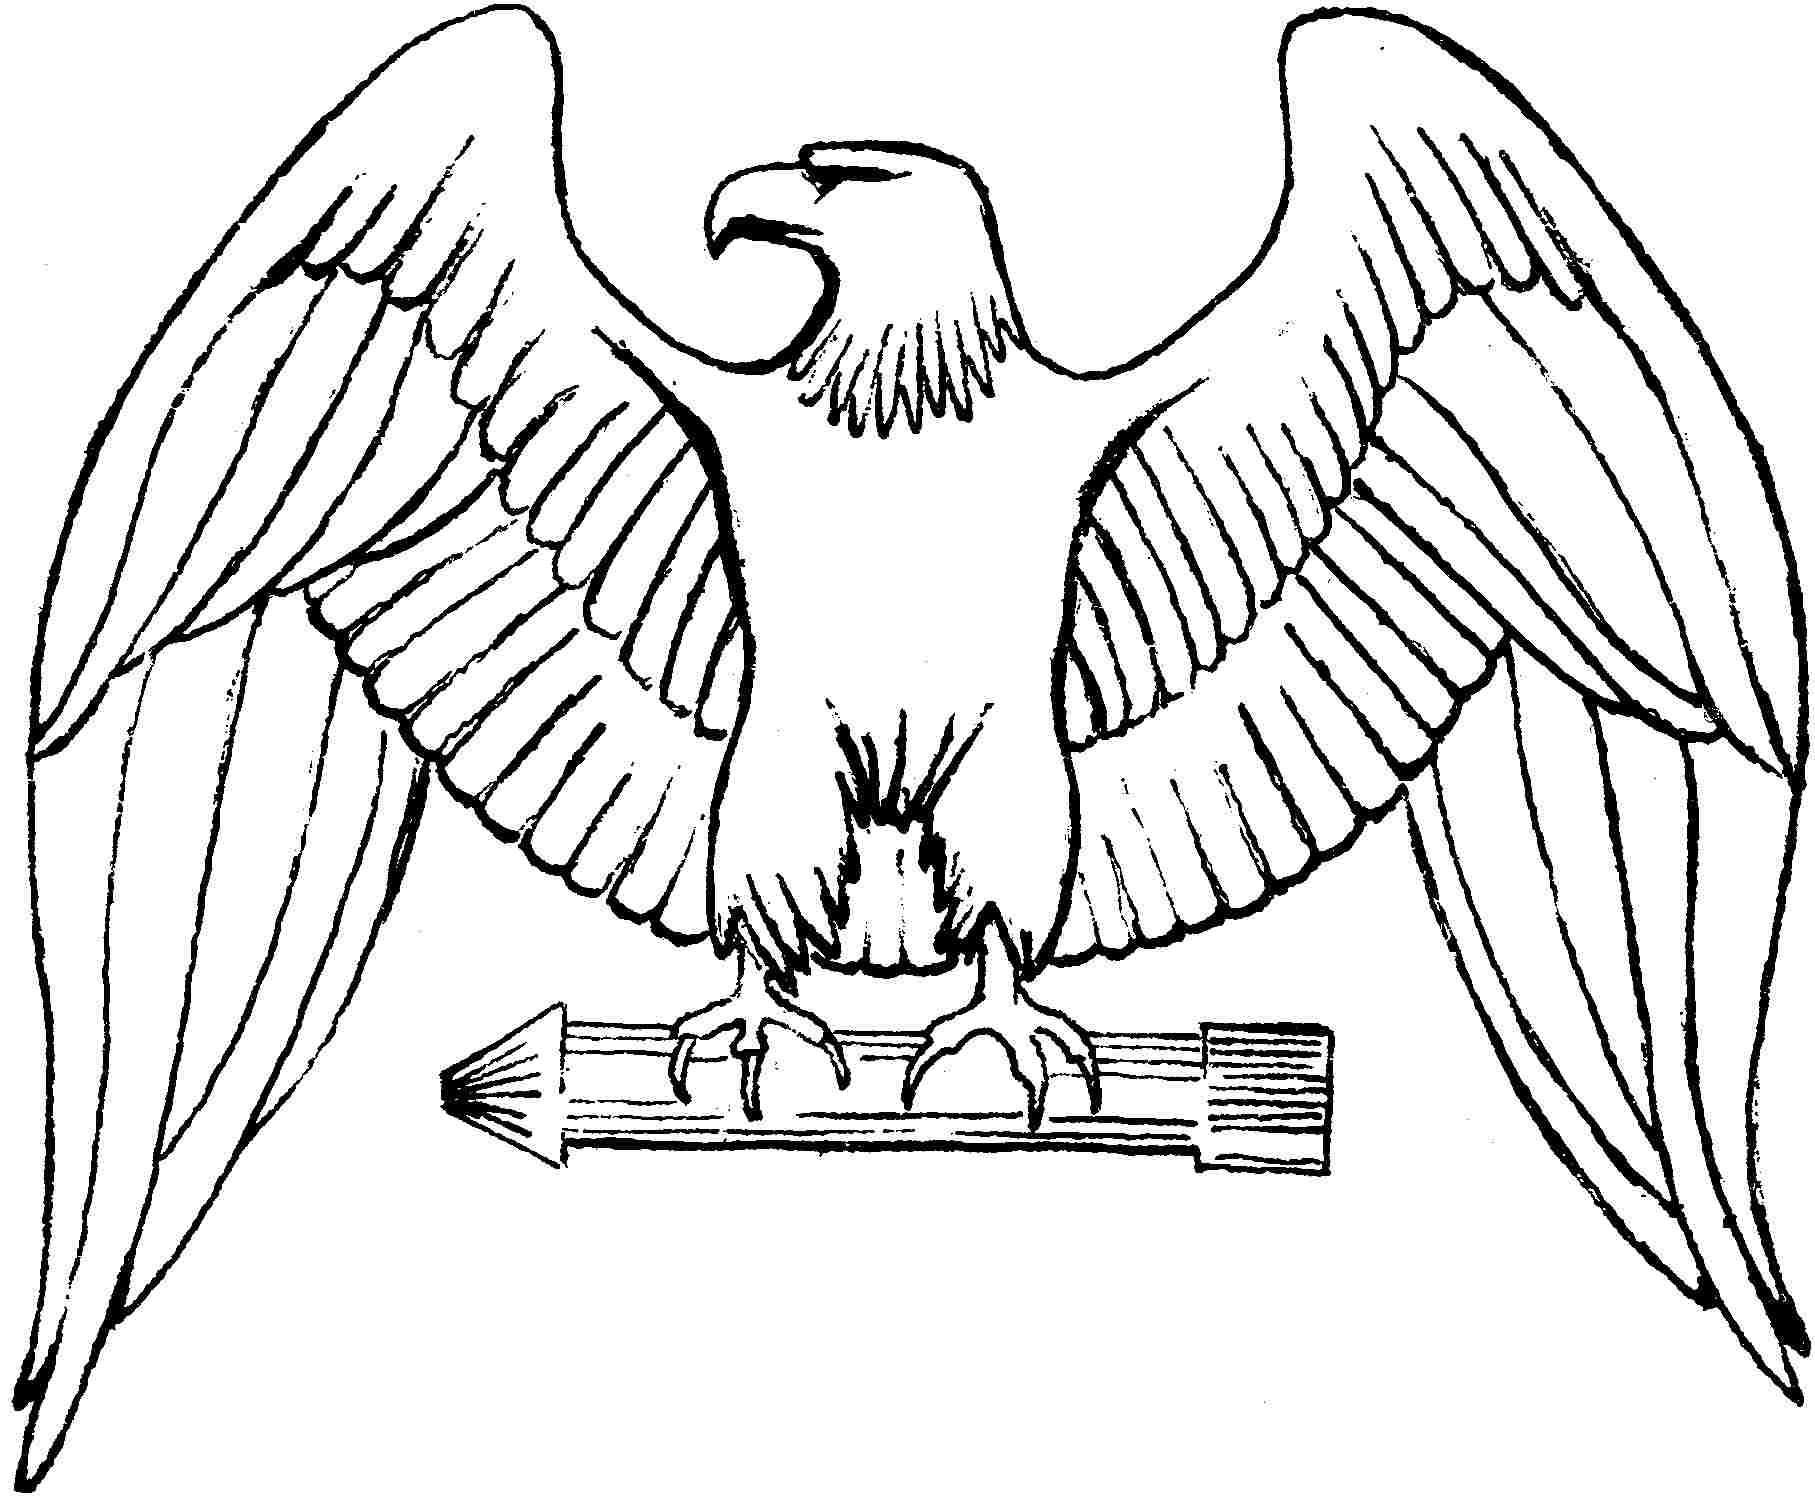 eagle coloring book eagle coloring pages to download and print for free book coloring eagle